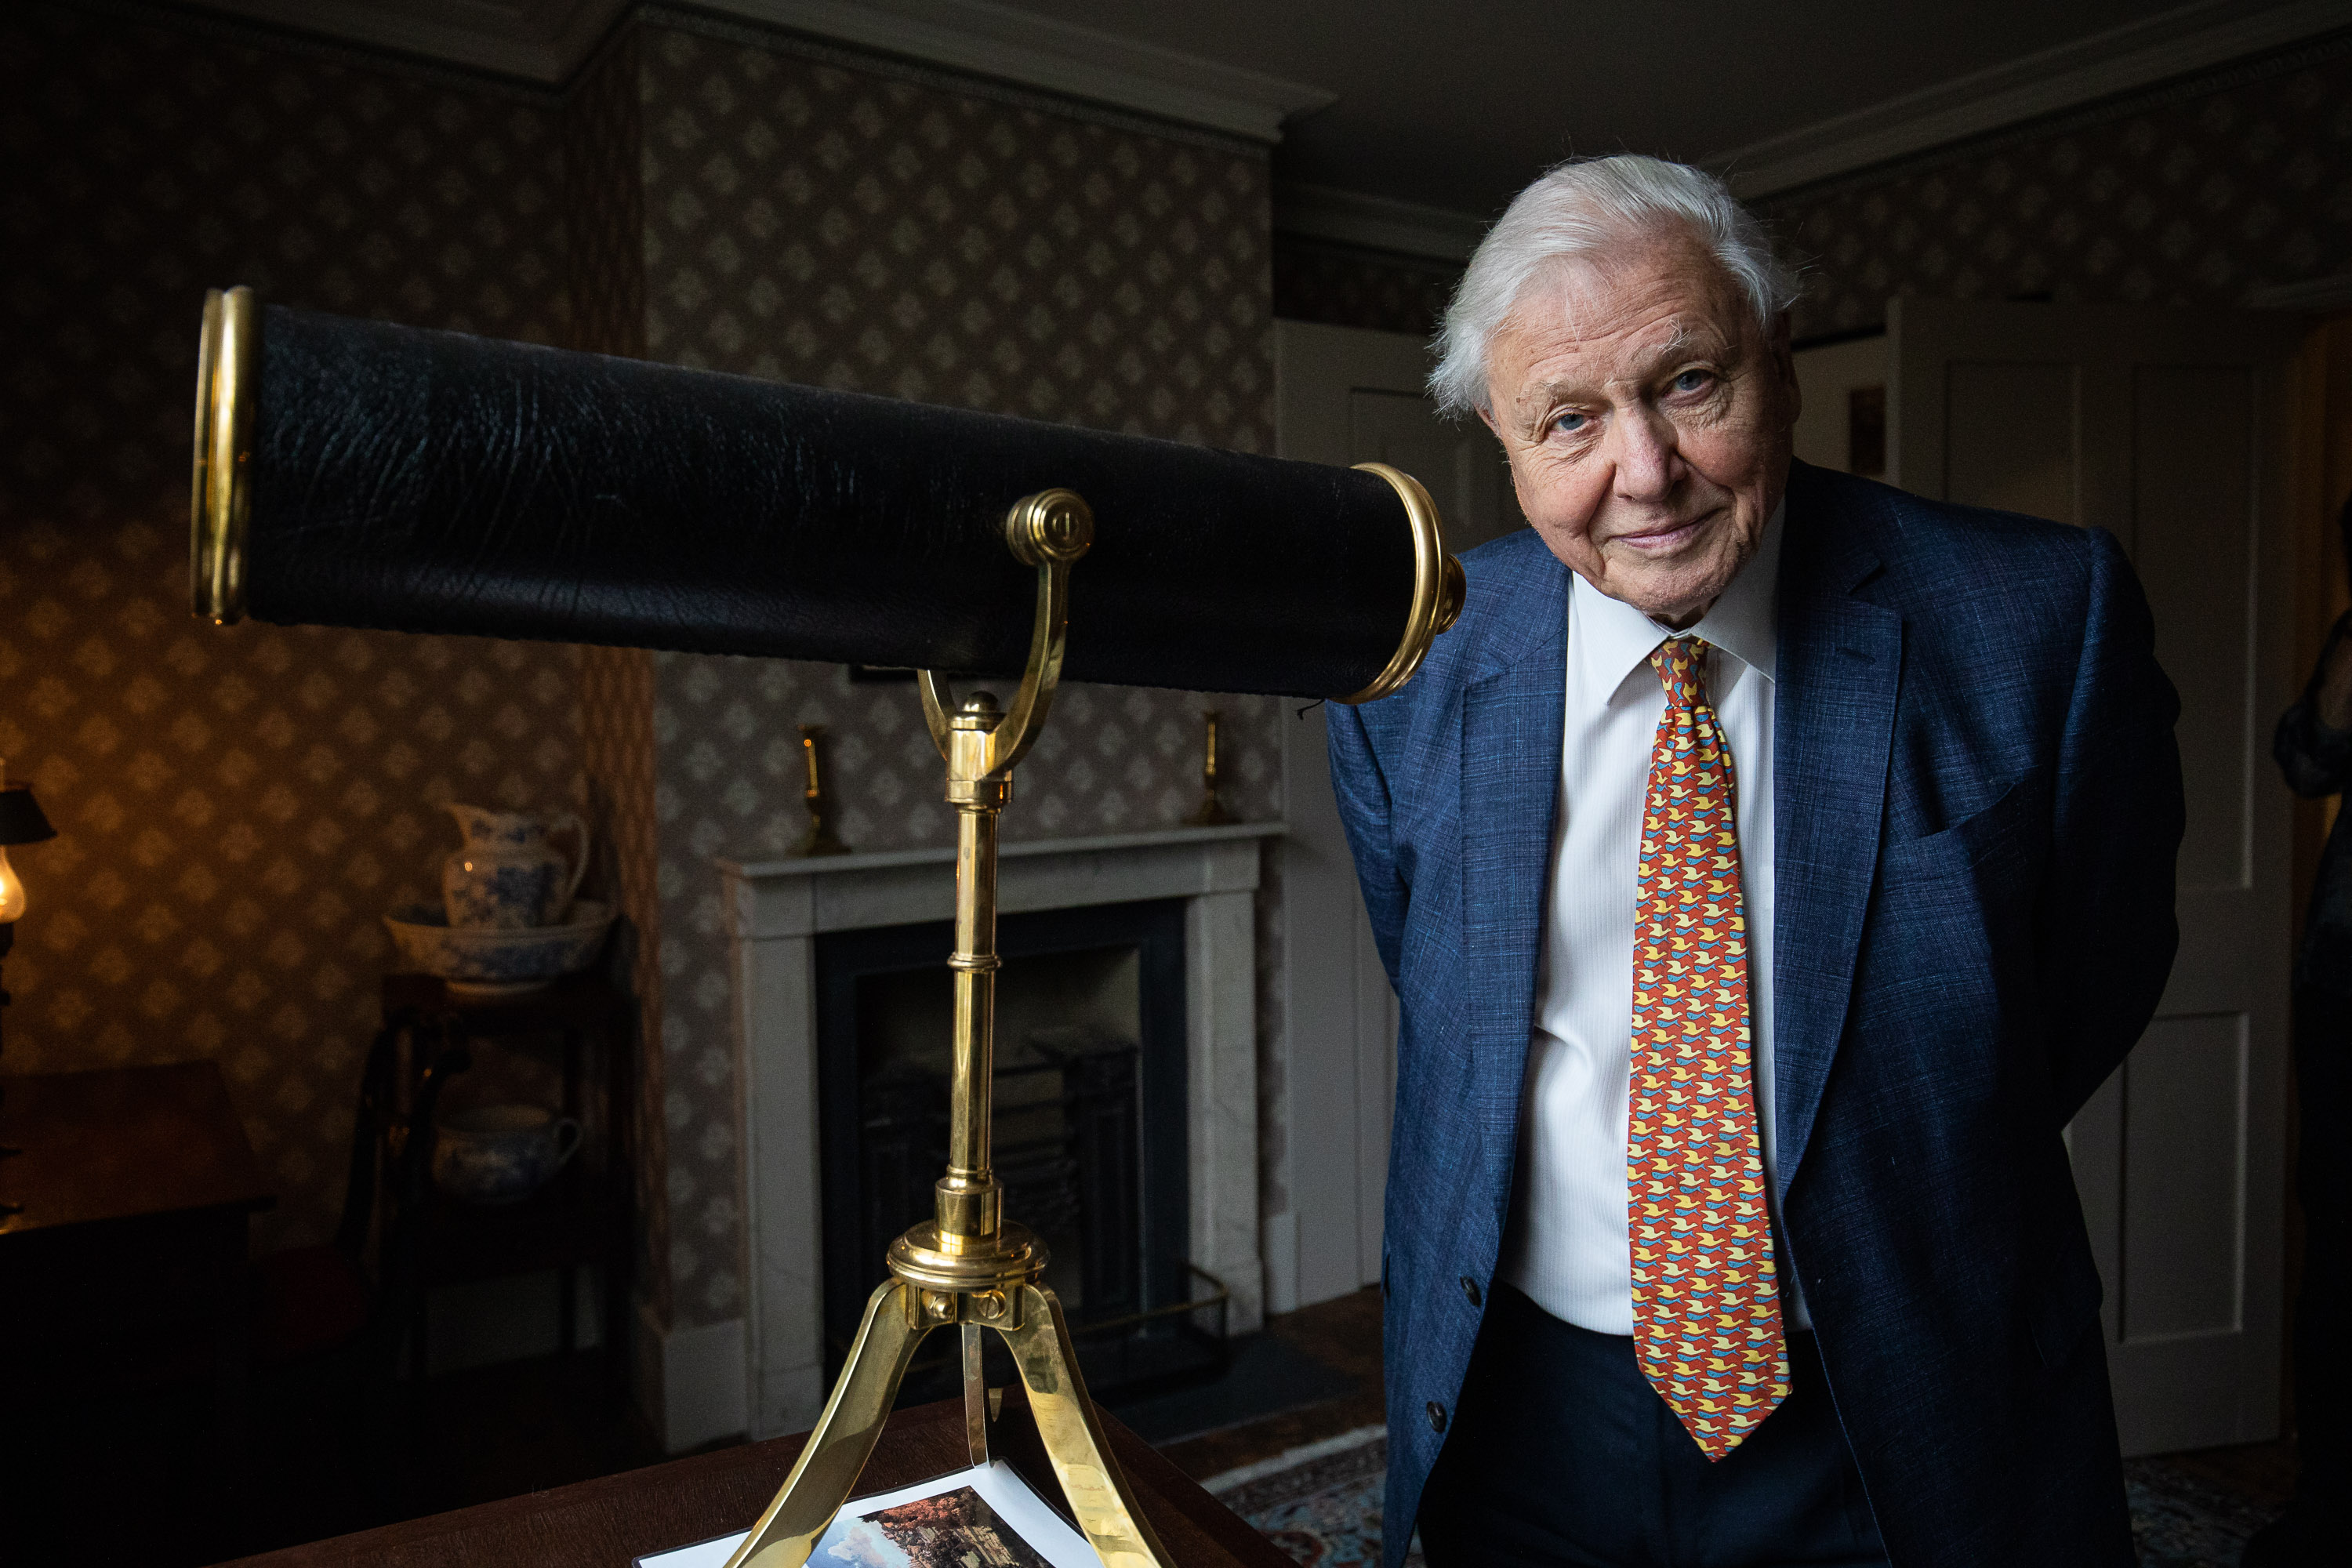 Sir David Attenborough attends an art opening on January 10 in London, England.